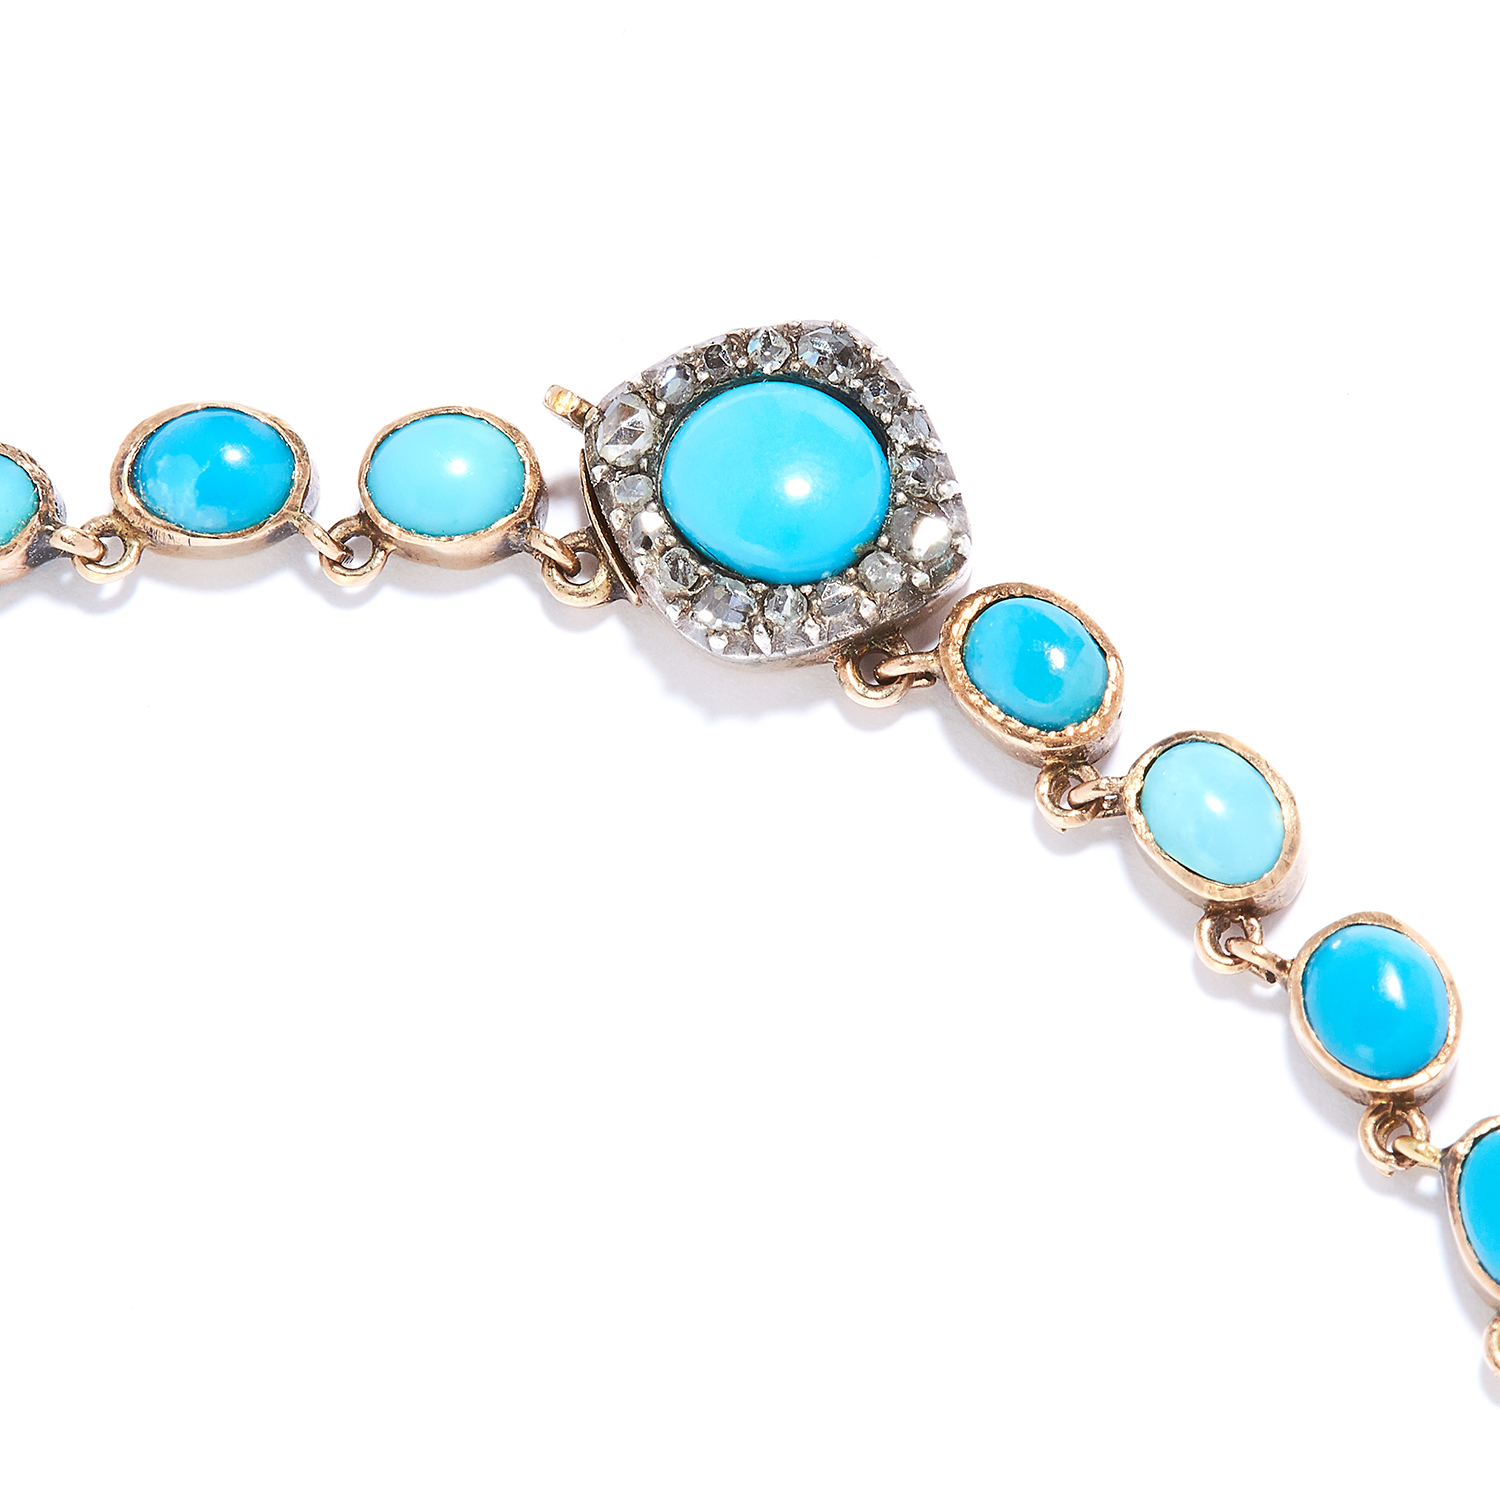 Los 1 - ANTIQUE TURQUOISE AND DIAMOND RIVIERA NECKLACE, 19TH CENTURY in high carat yellow gold, set with